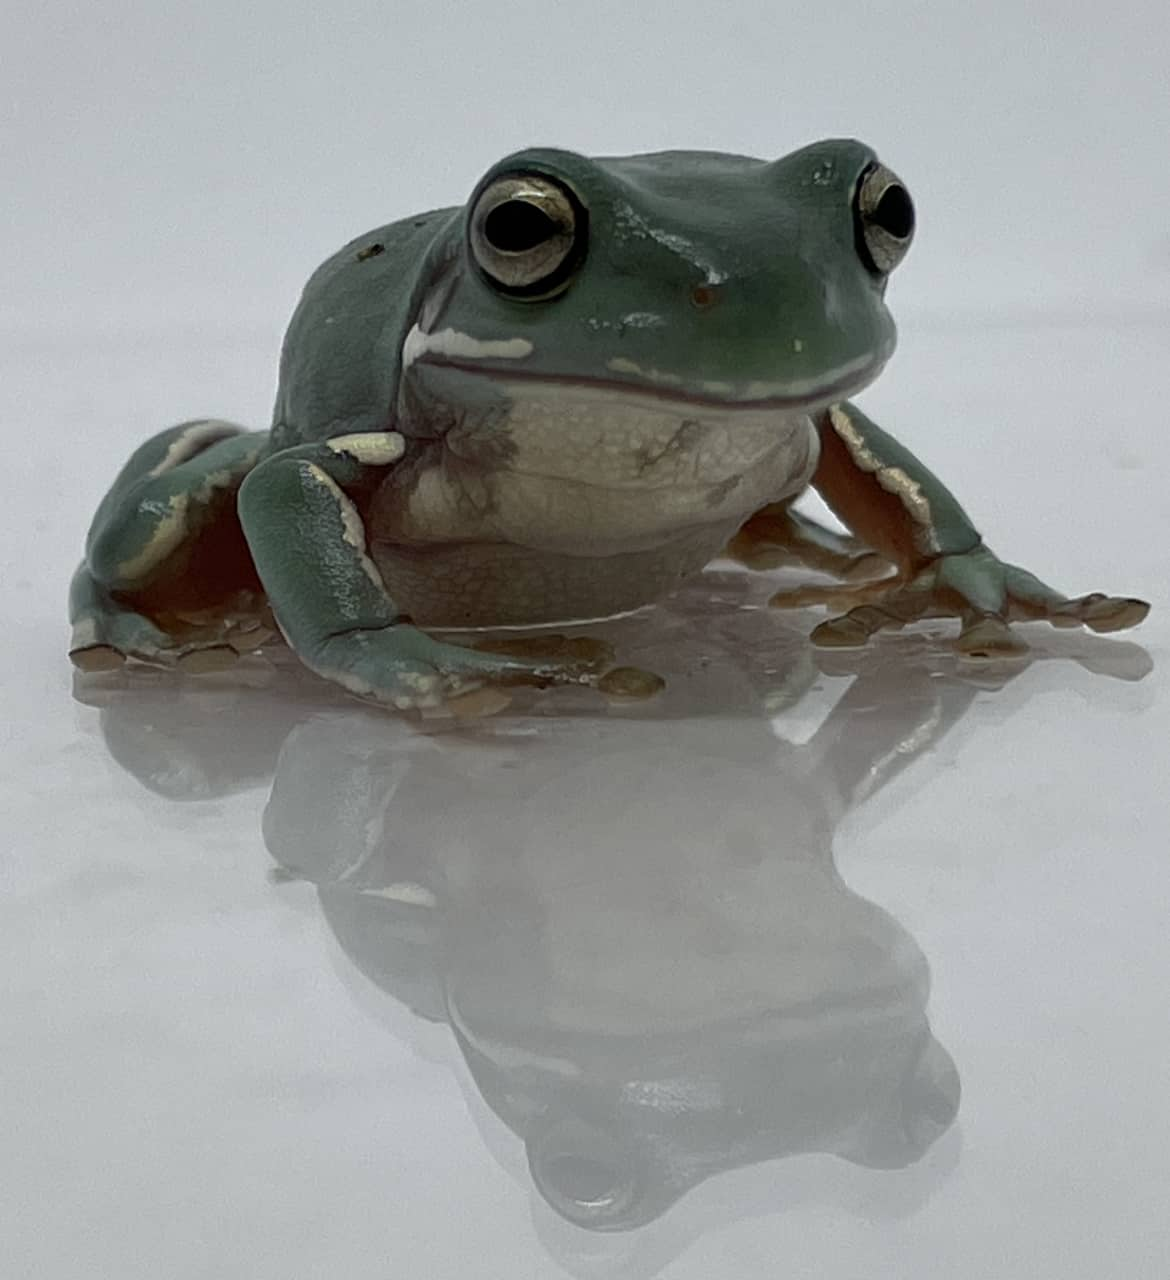 White's tree frog front view